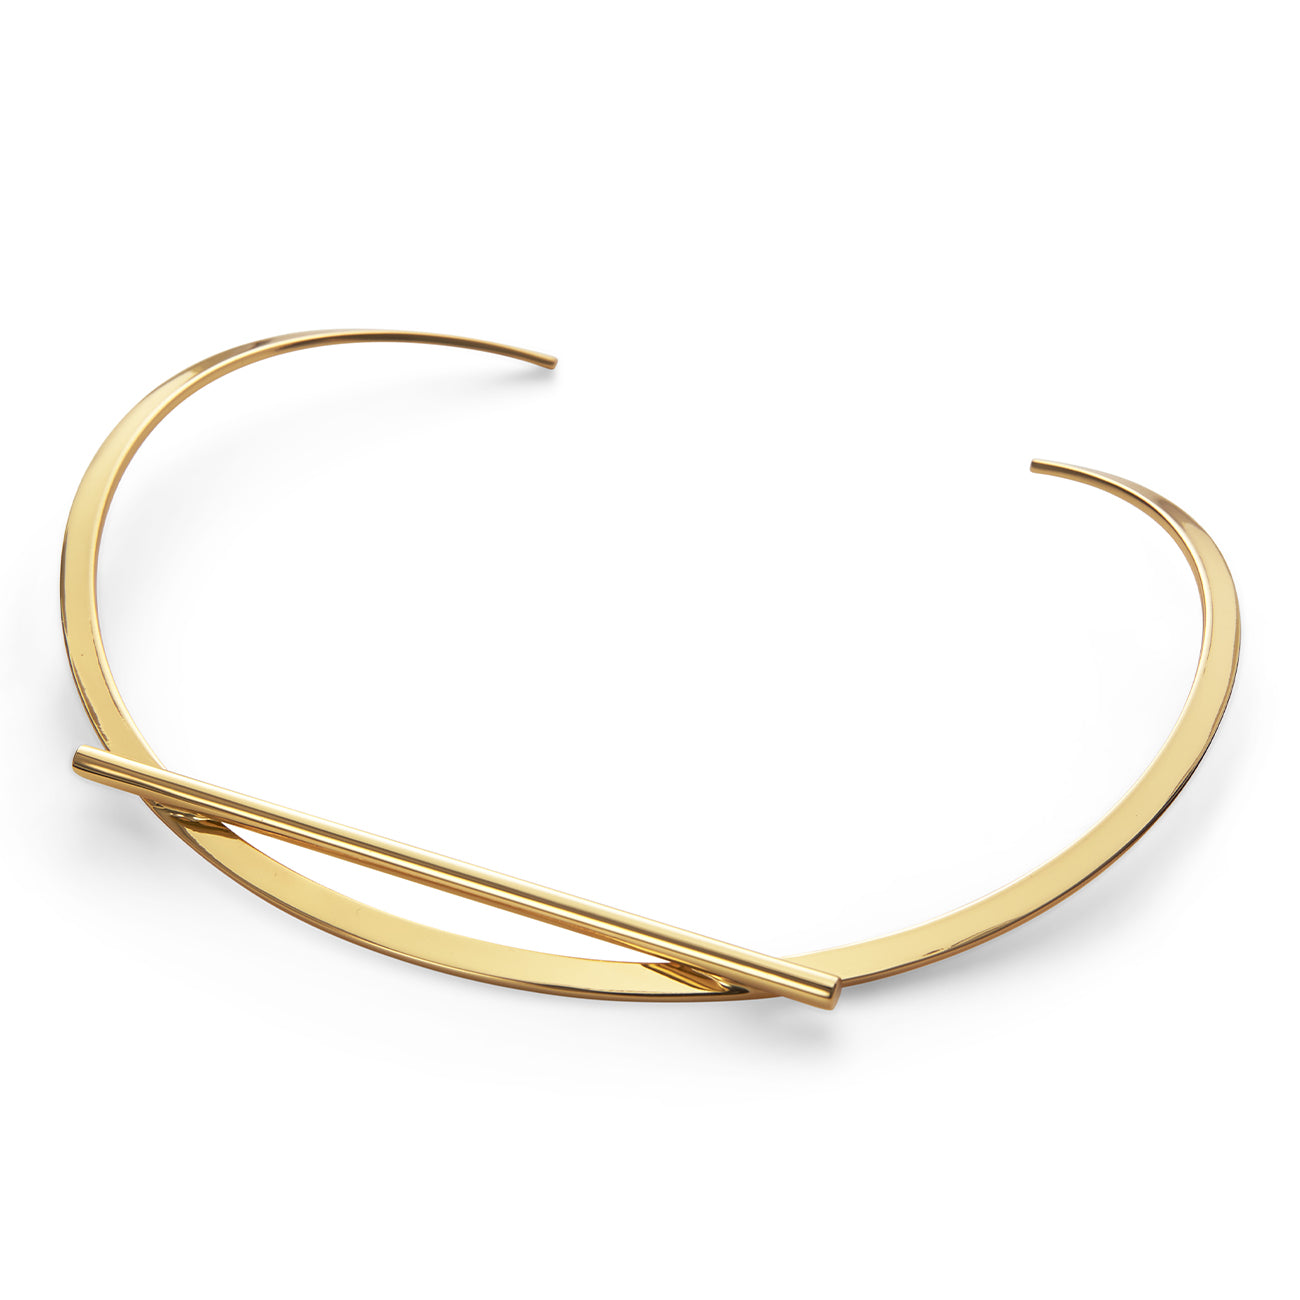 Trust Collar by Jenny Bird in Gold